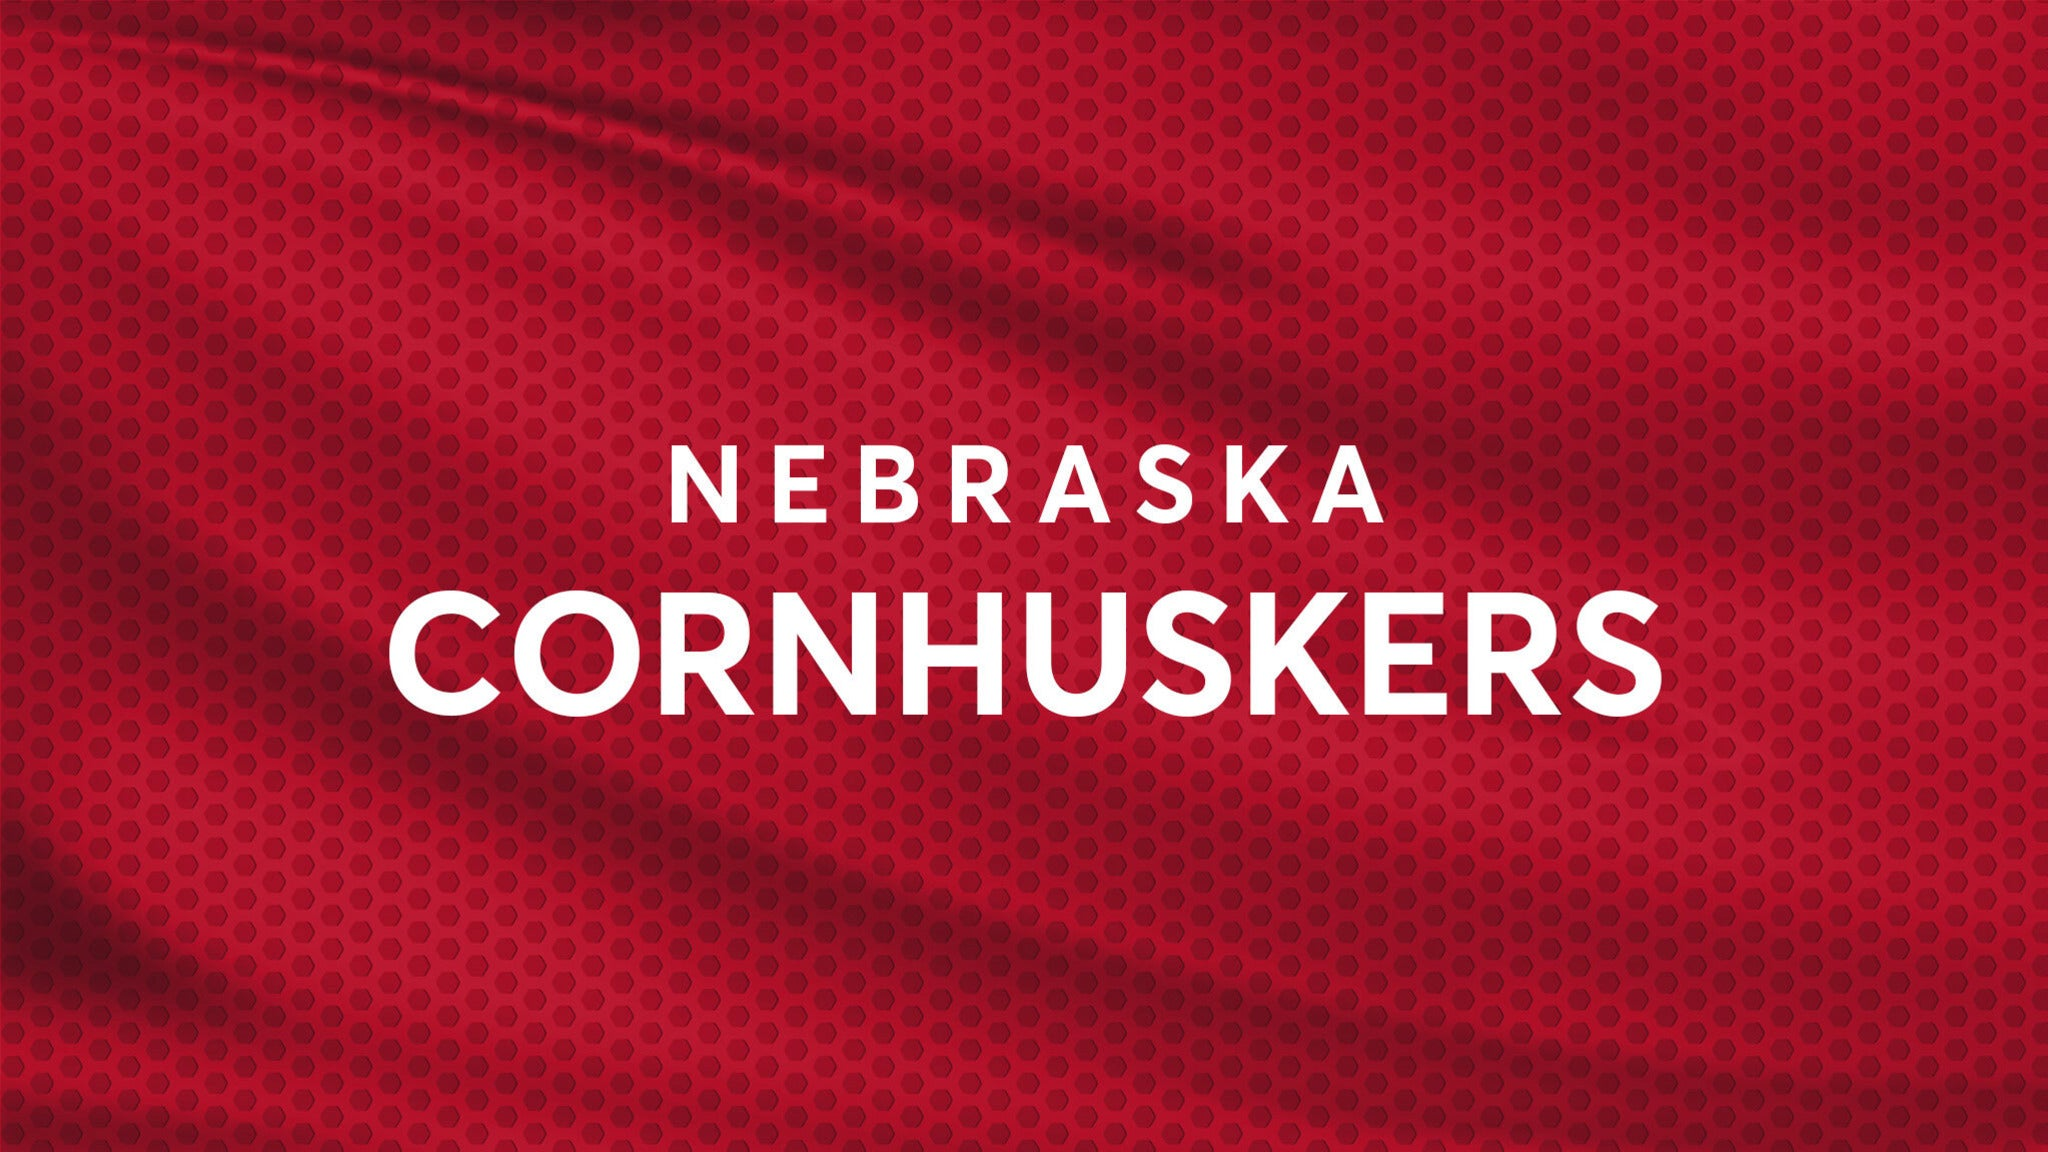 Nebraska Cornhuskers Mens Basketball